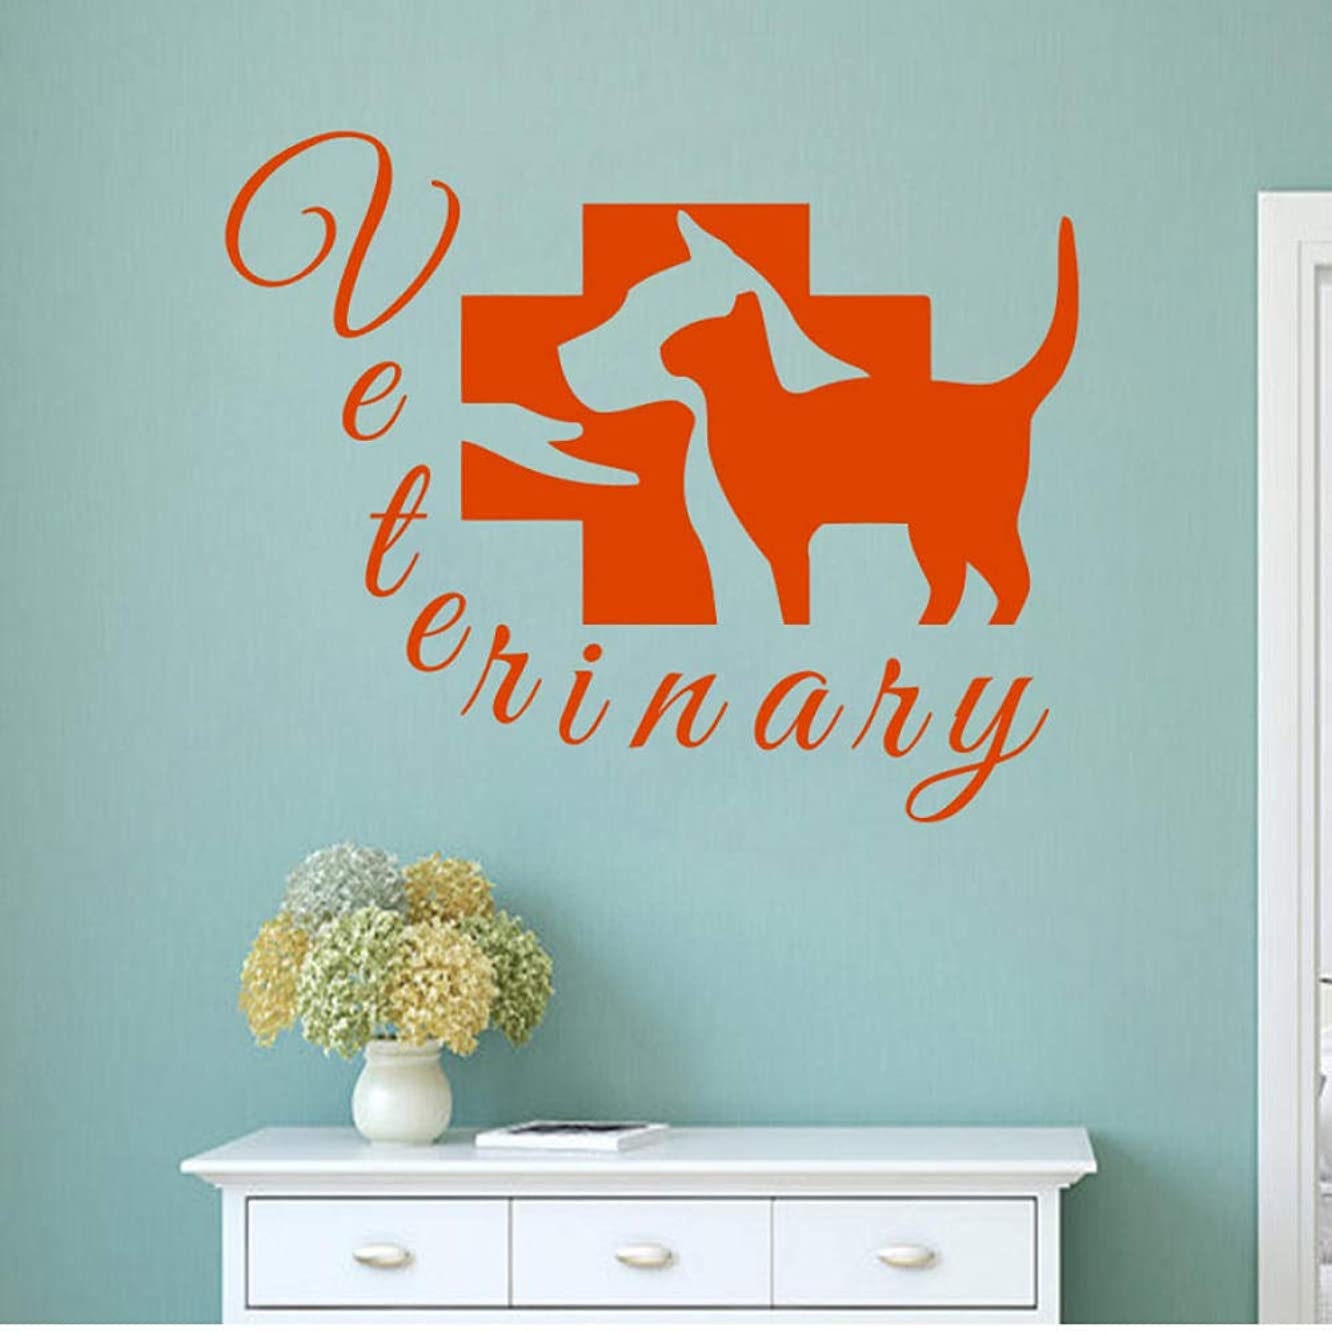 qscwdv Grooming Salon Wall Decal Pet Veterinary Services Vinyl Dog Cat Hospital Shop Removable Stickers Veterinary Clinic Design4252Cm